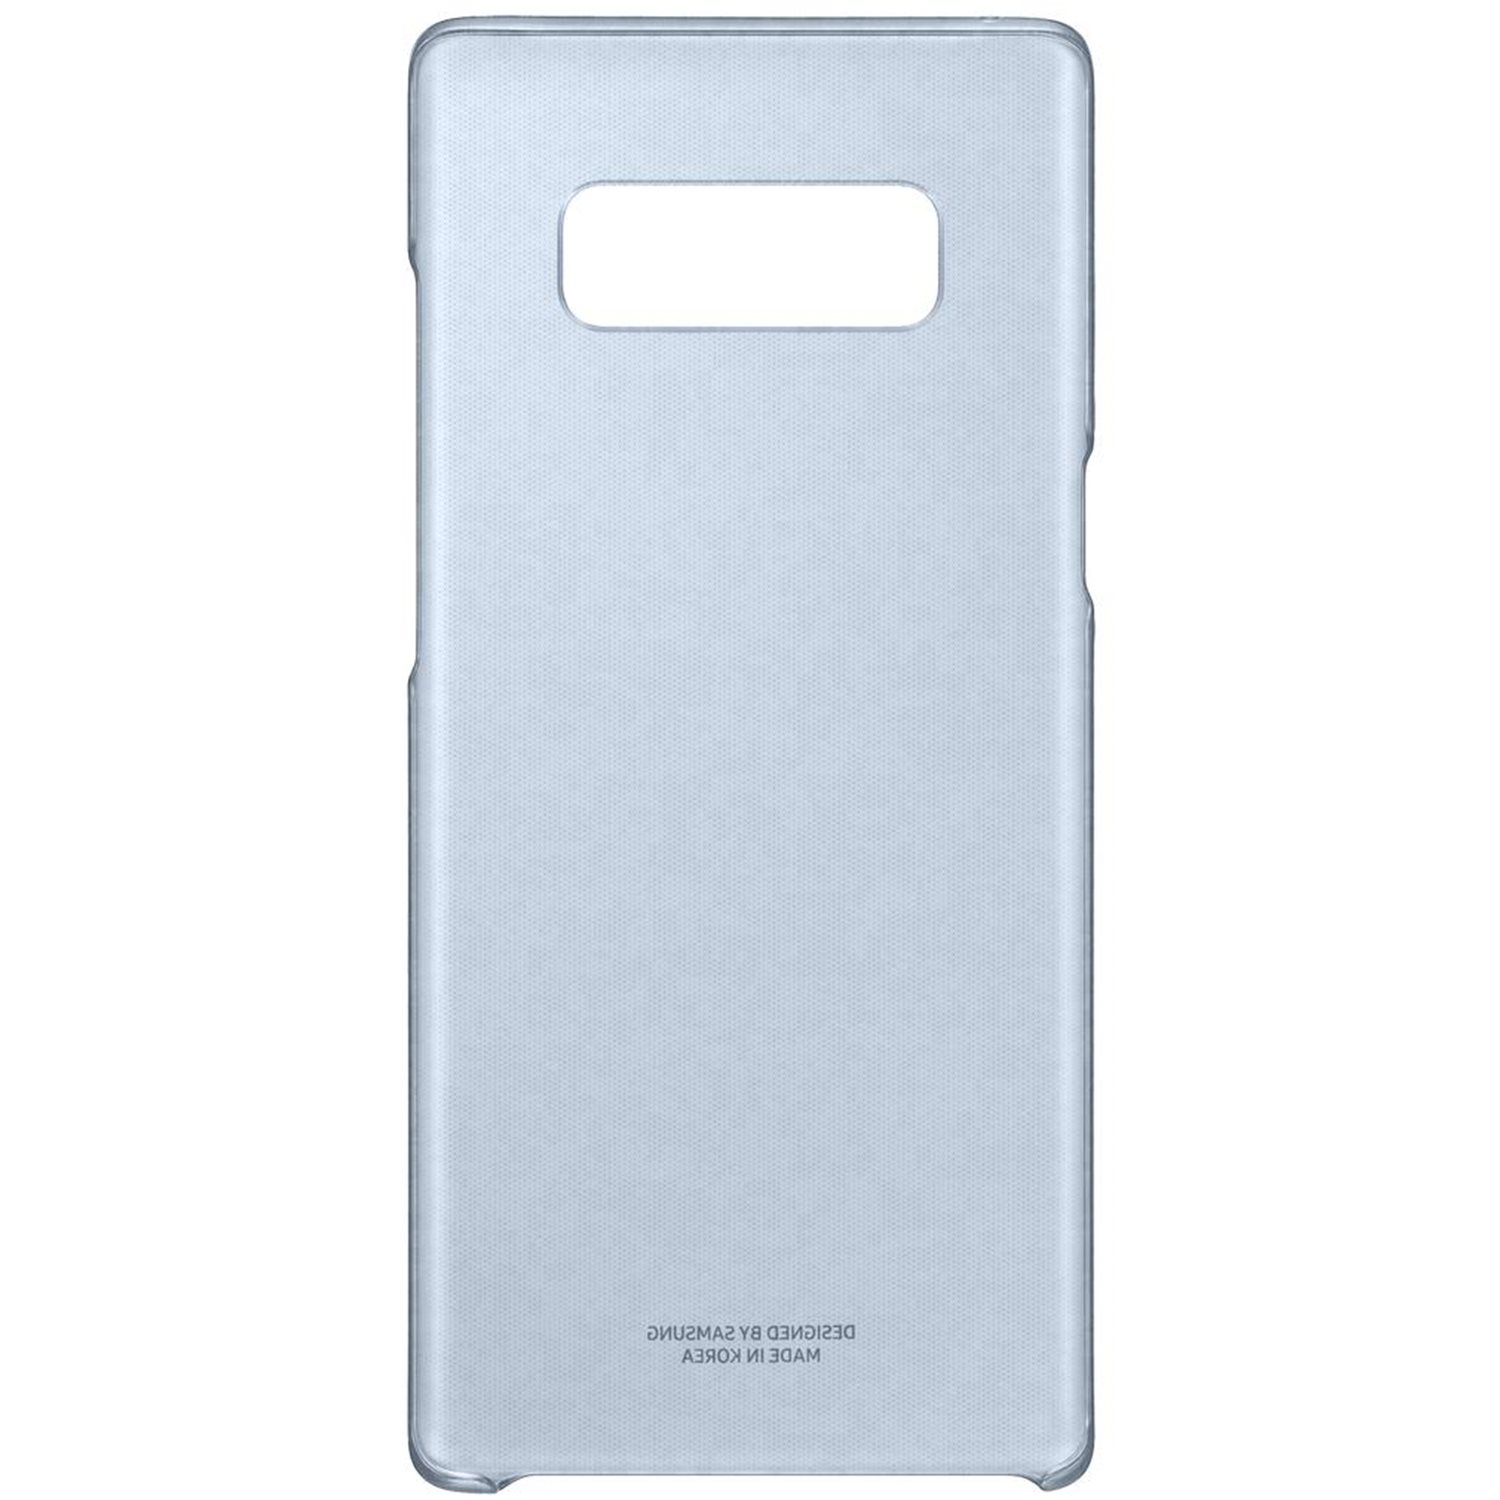 Etui Samsung Clear Cover do Galaxy Note 8 caseC